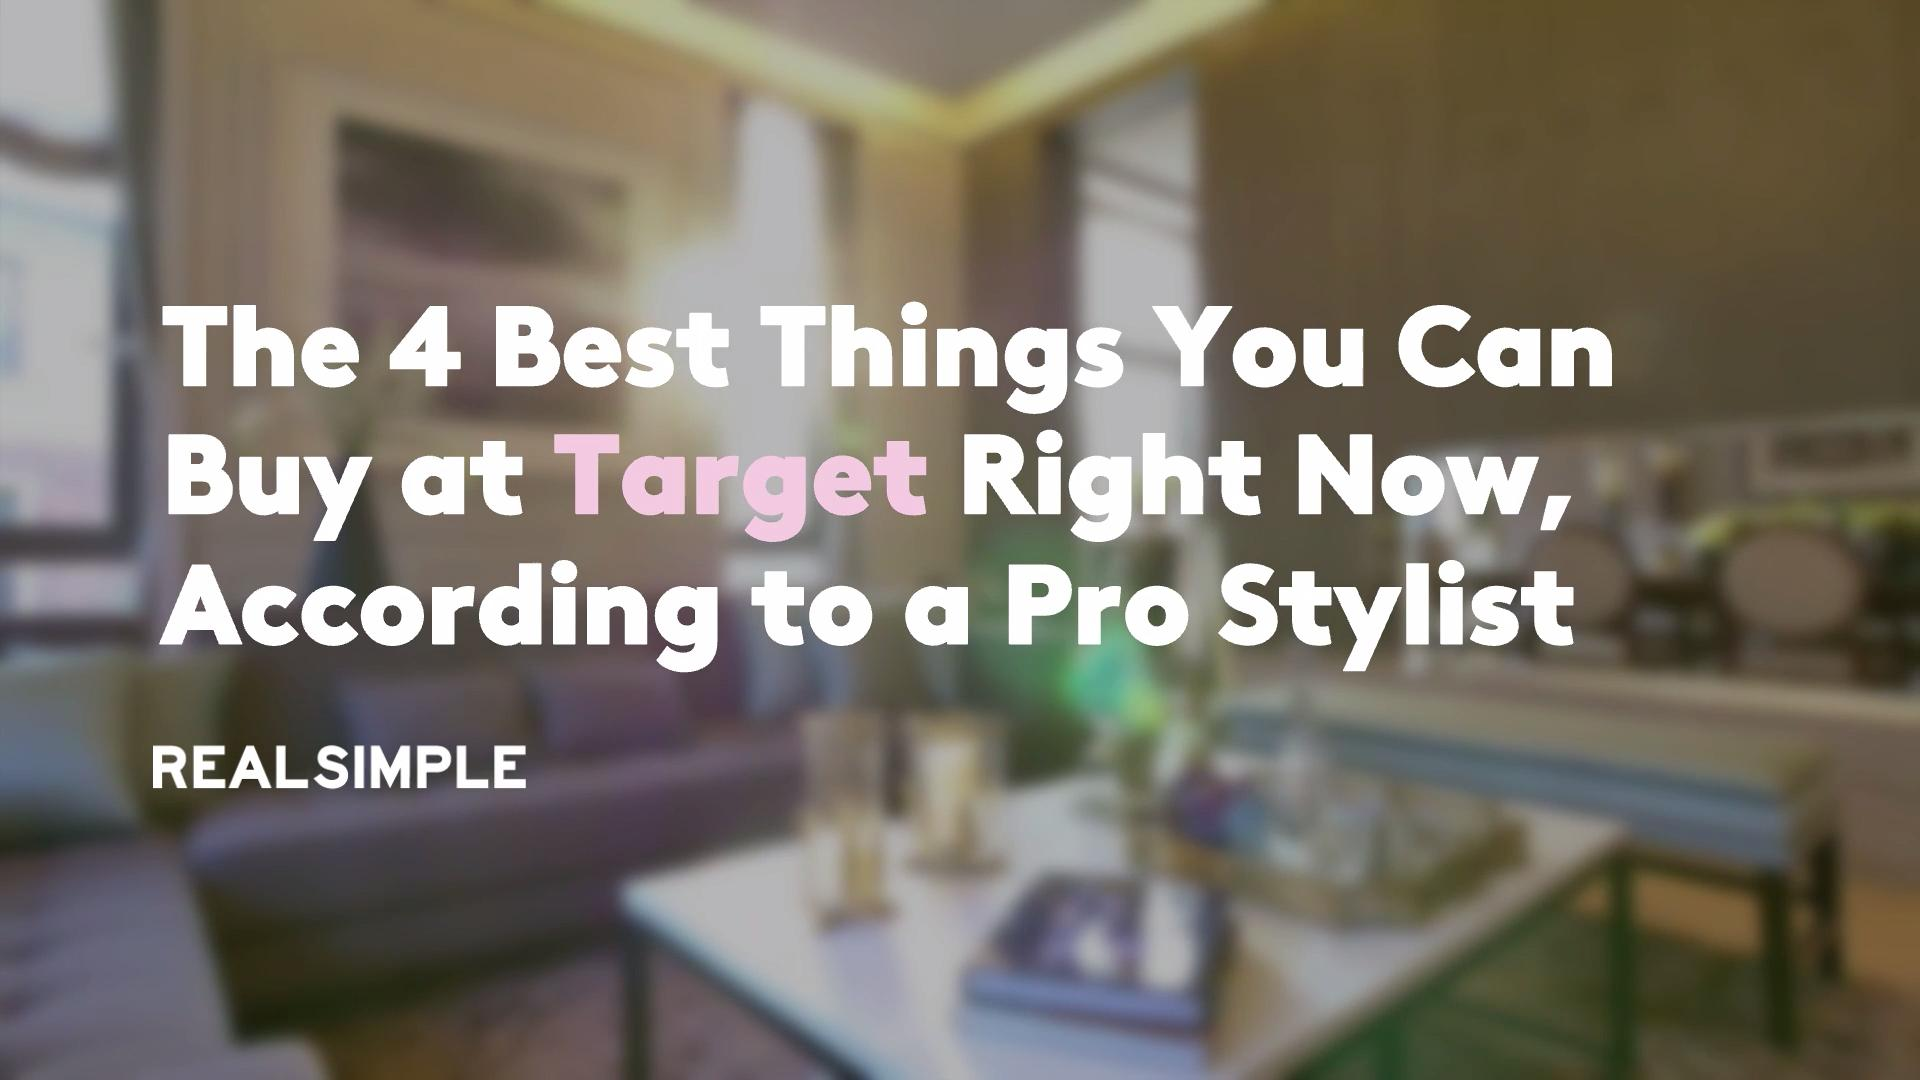 The 4 Best Things You Can Buy at Target Right Now, According to a Pro Stylist